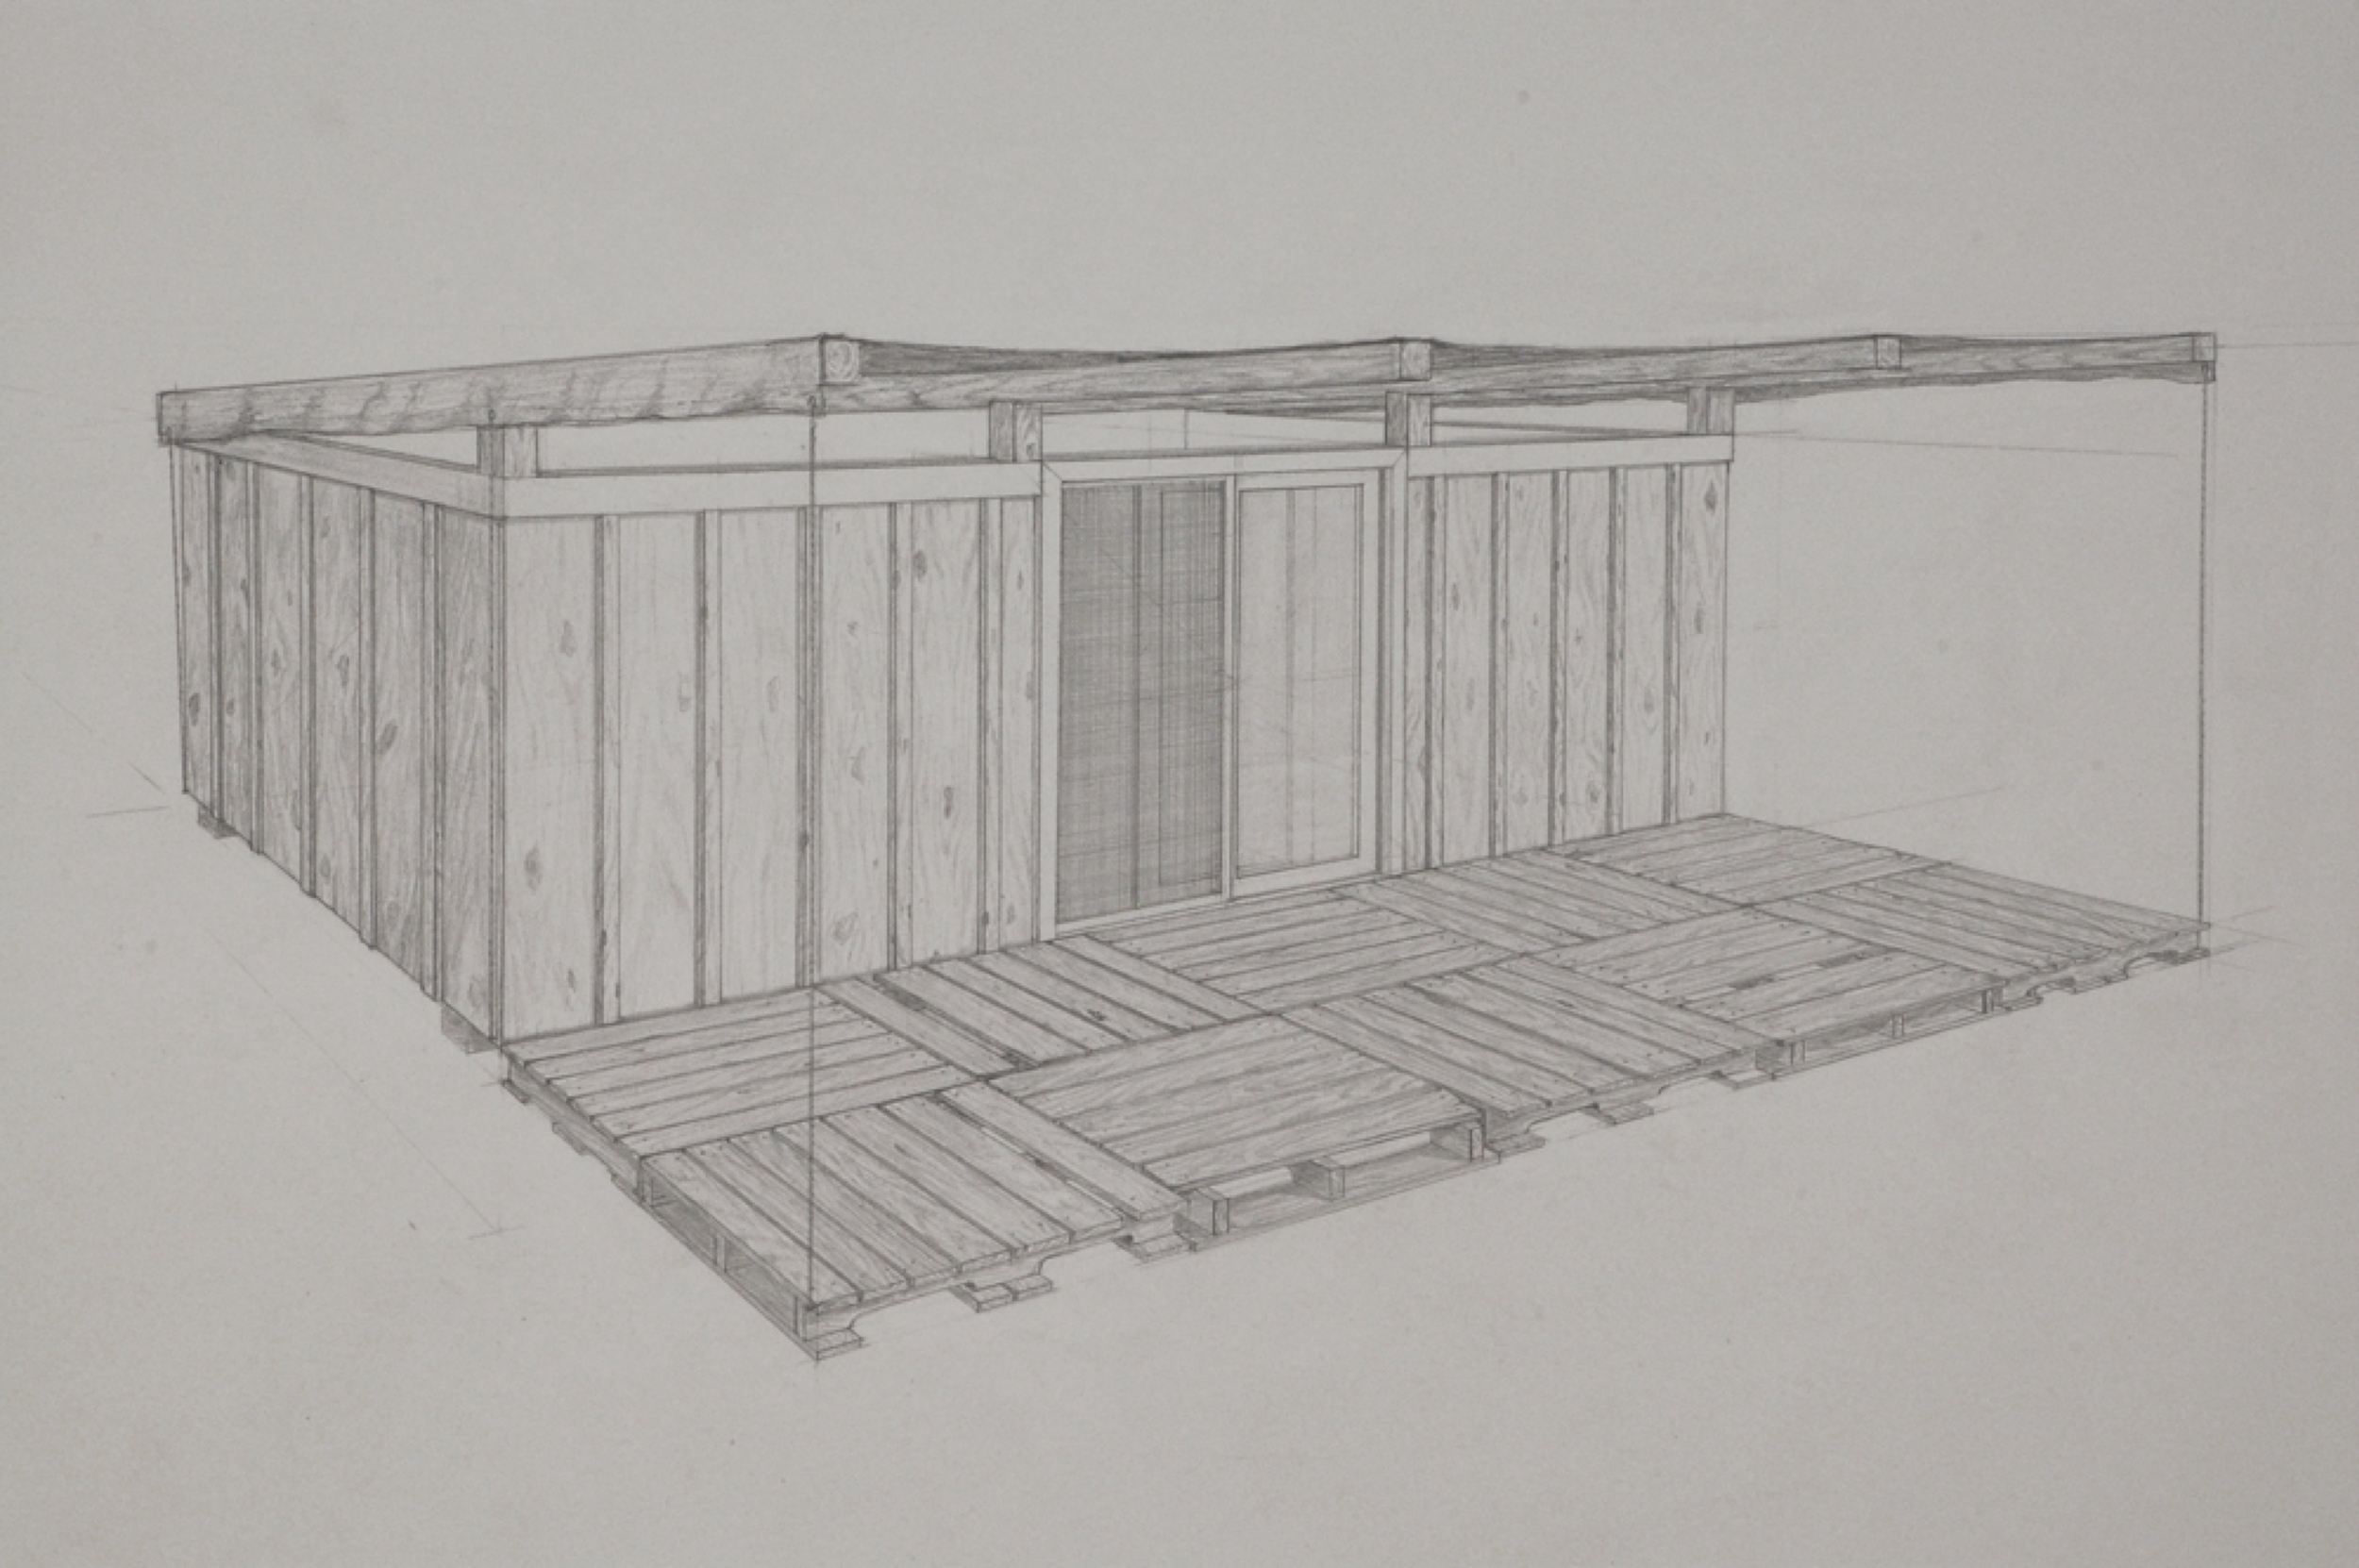 Dumpster 3 (detail) / graphite on paper / 22 x 30""